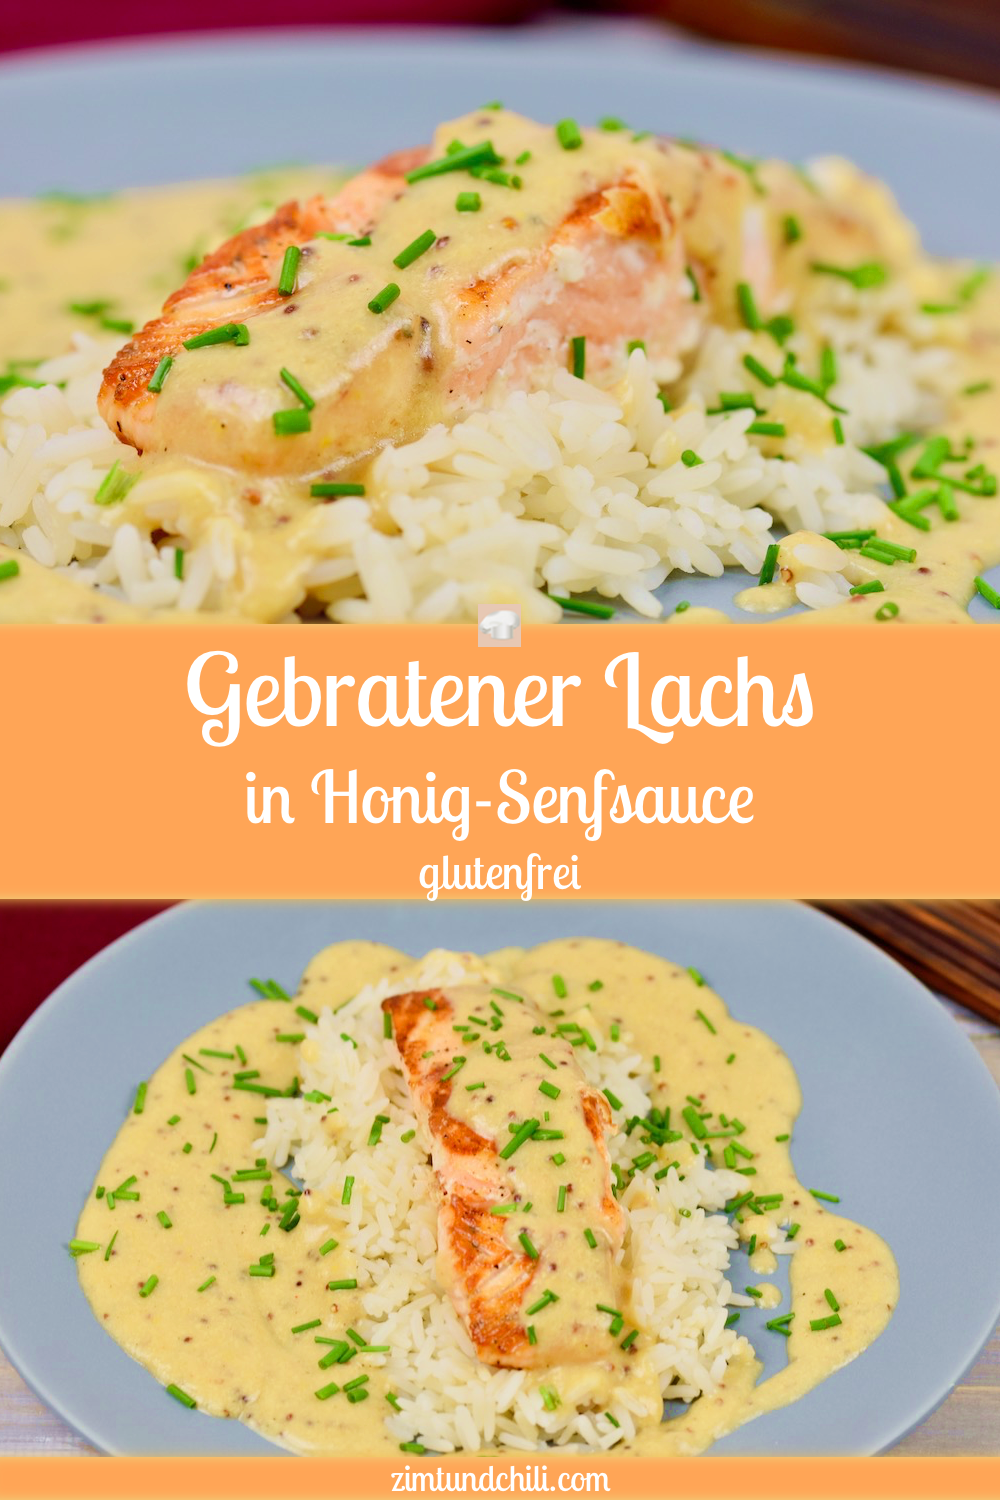 Gebratener Lachs in Honig-Senfsauce - Zimt & Chili #cleaneating